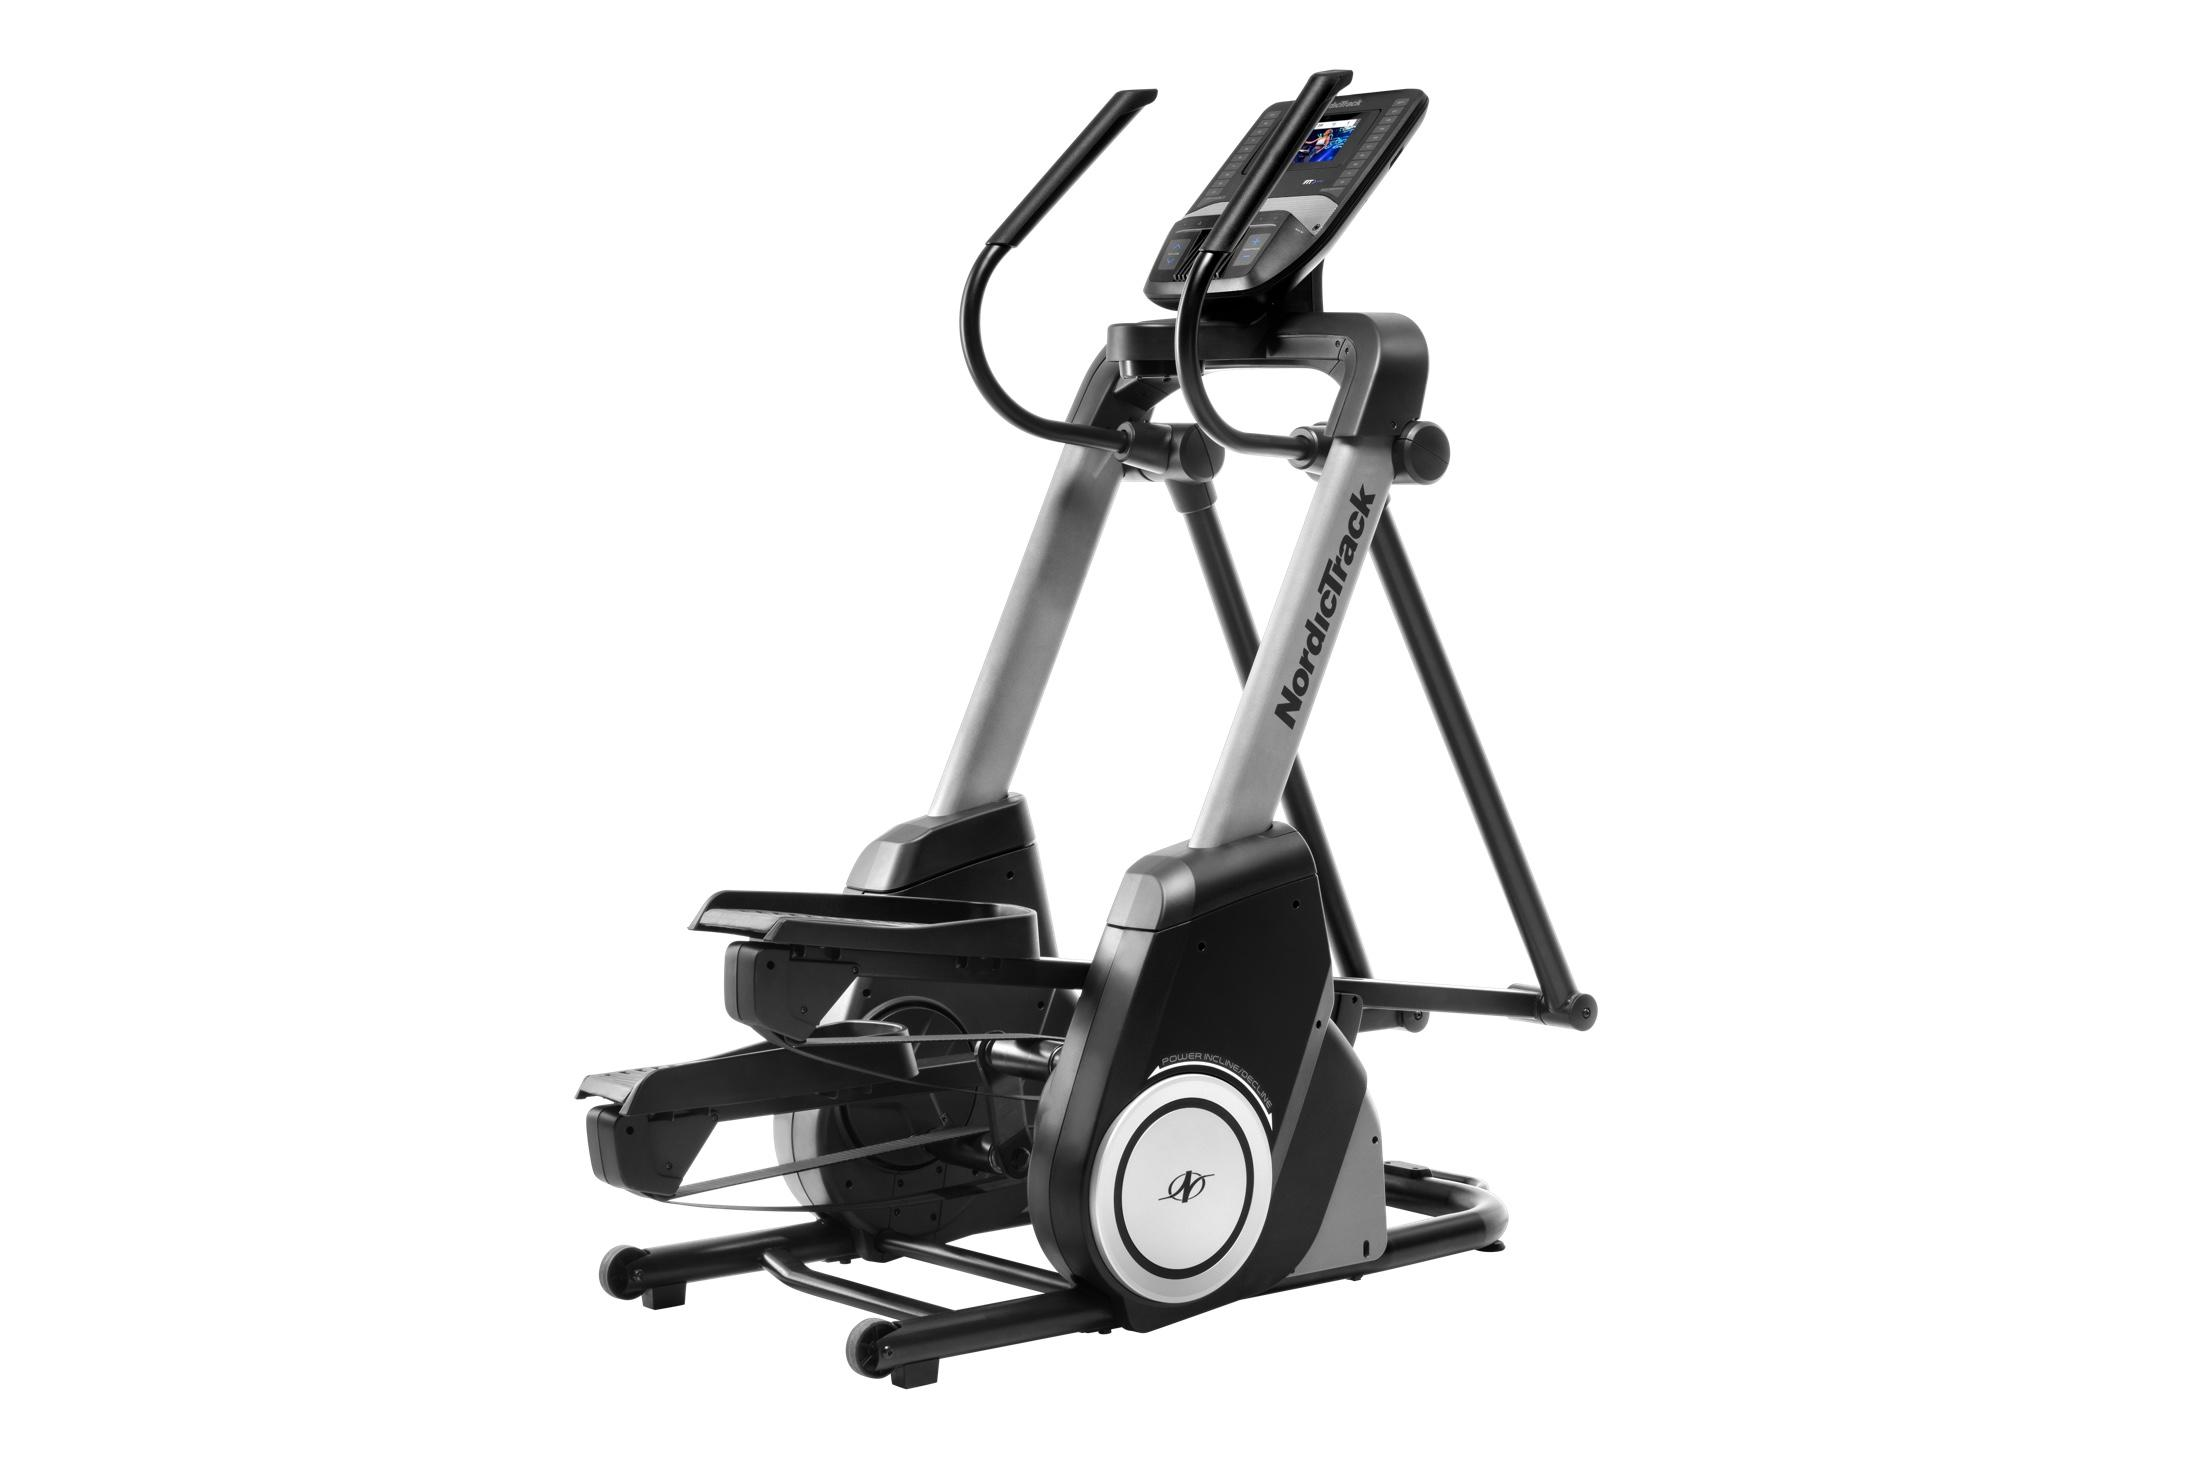 Best Ellipticals 2019 Best Home Ellipticals of 2019   EllipticalReviews.com